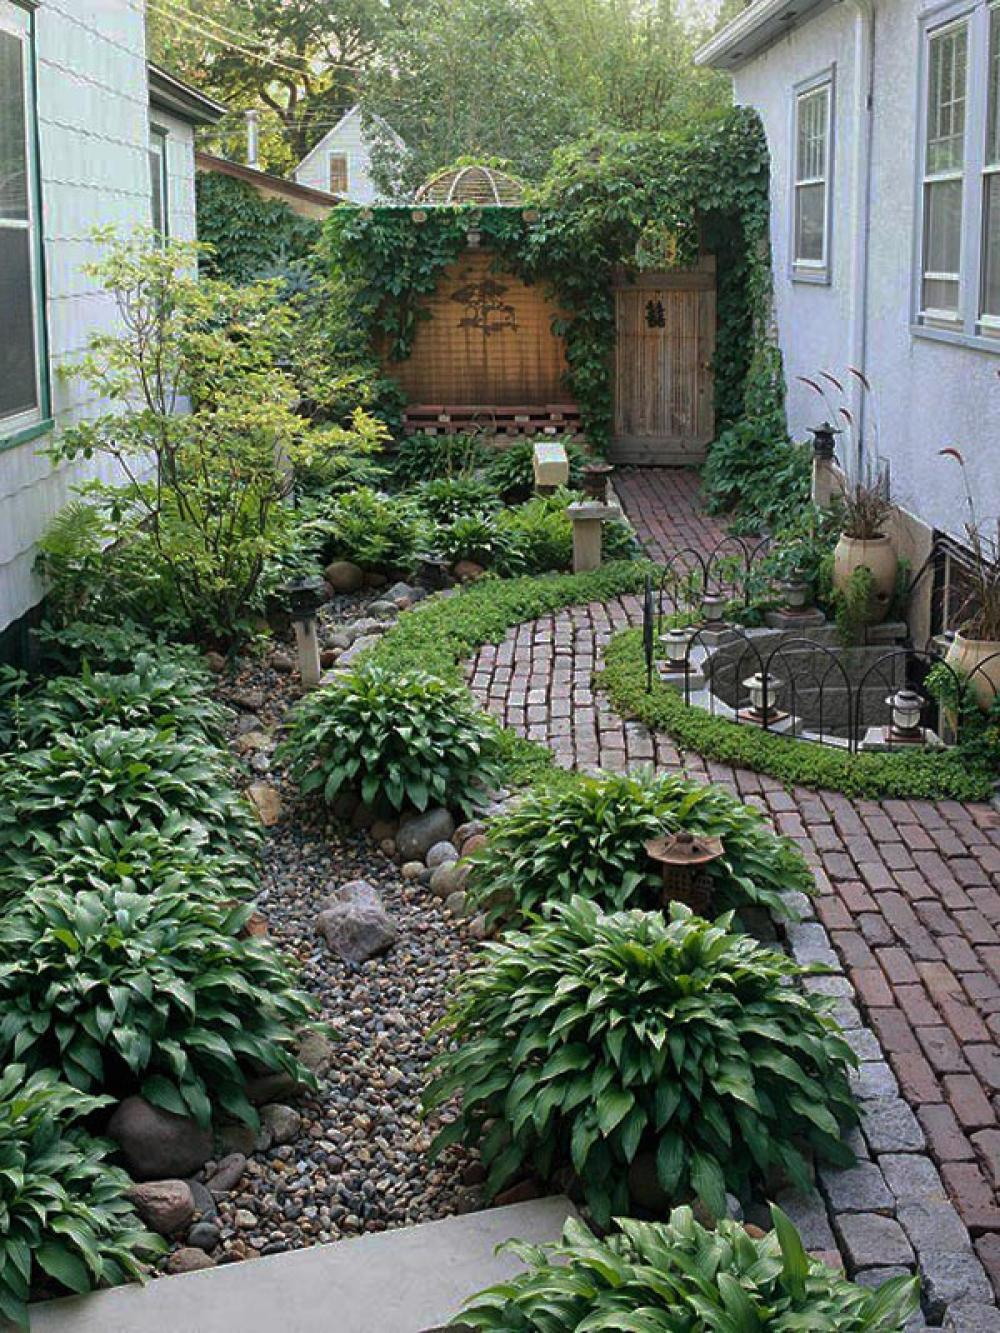 Small garden design in home home and design for Very small garden design ideas uk